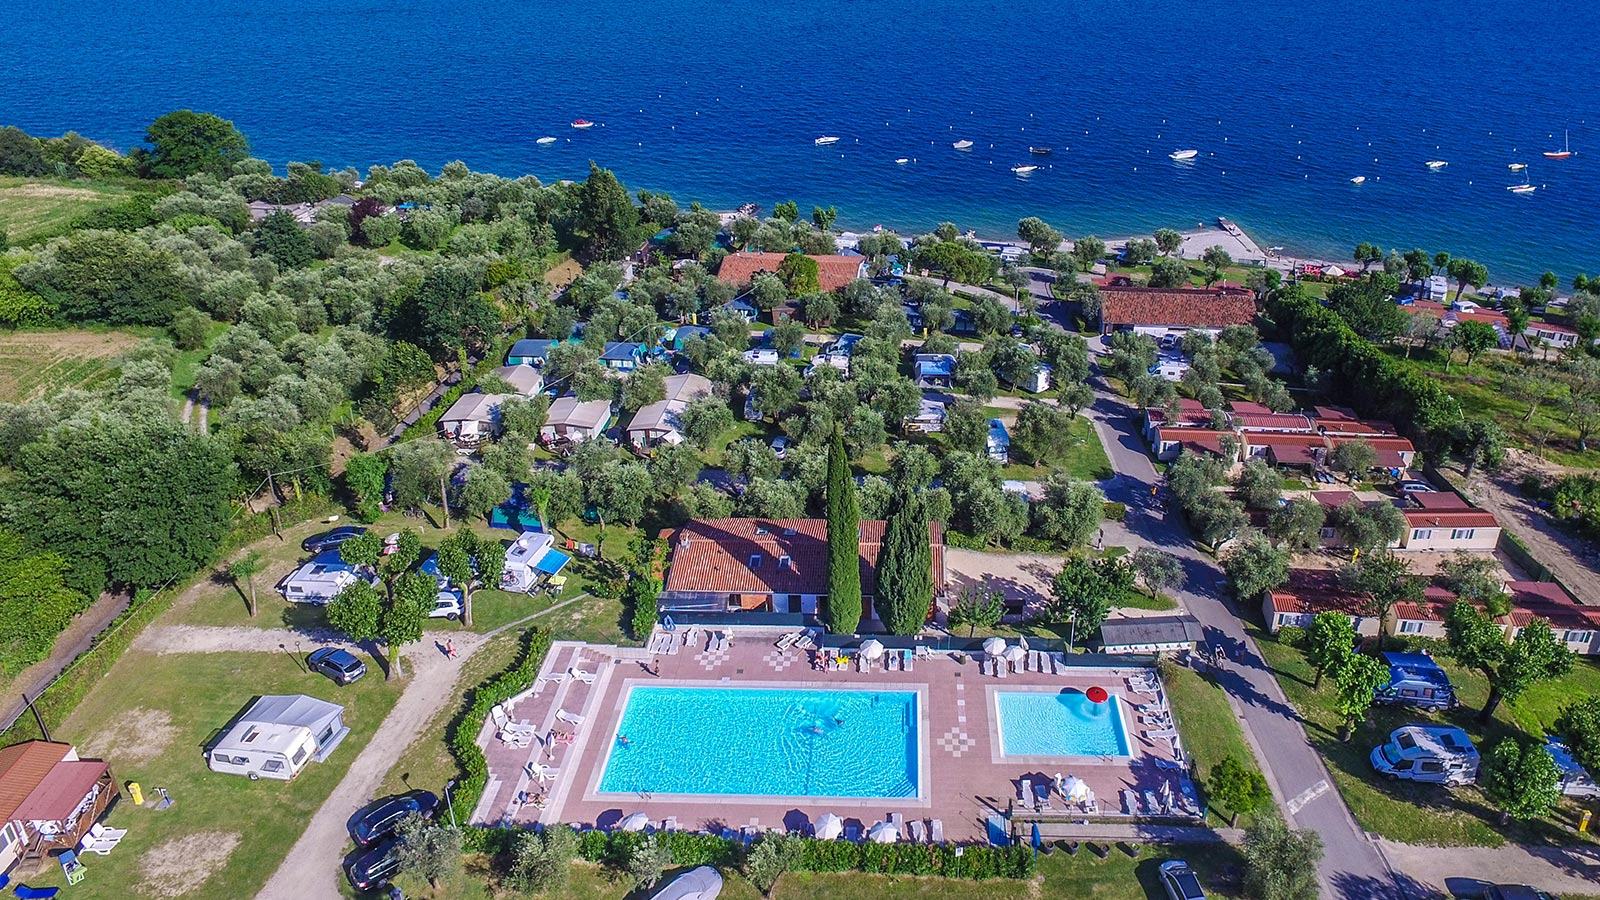 View from above of Fontanelle camping lake garda